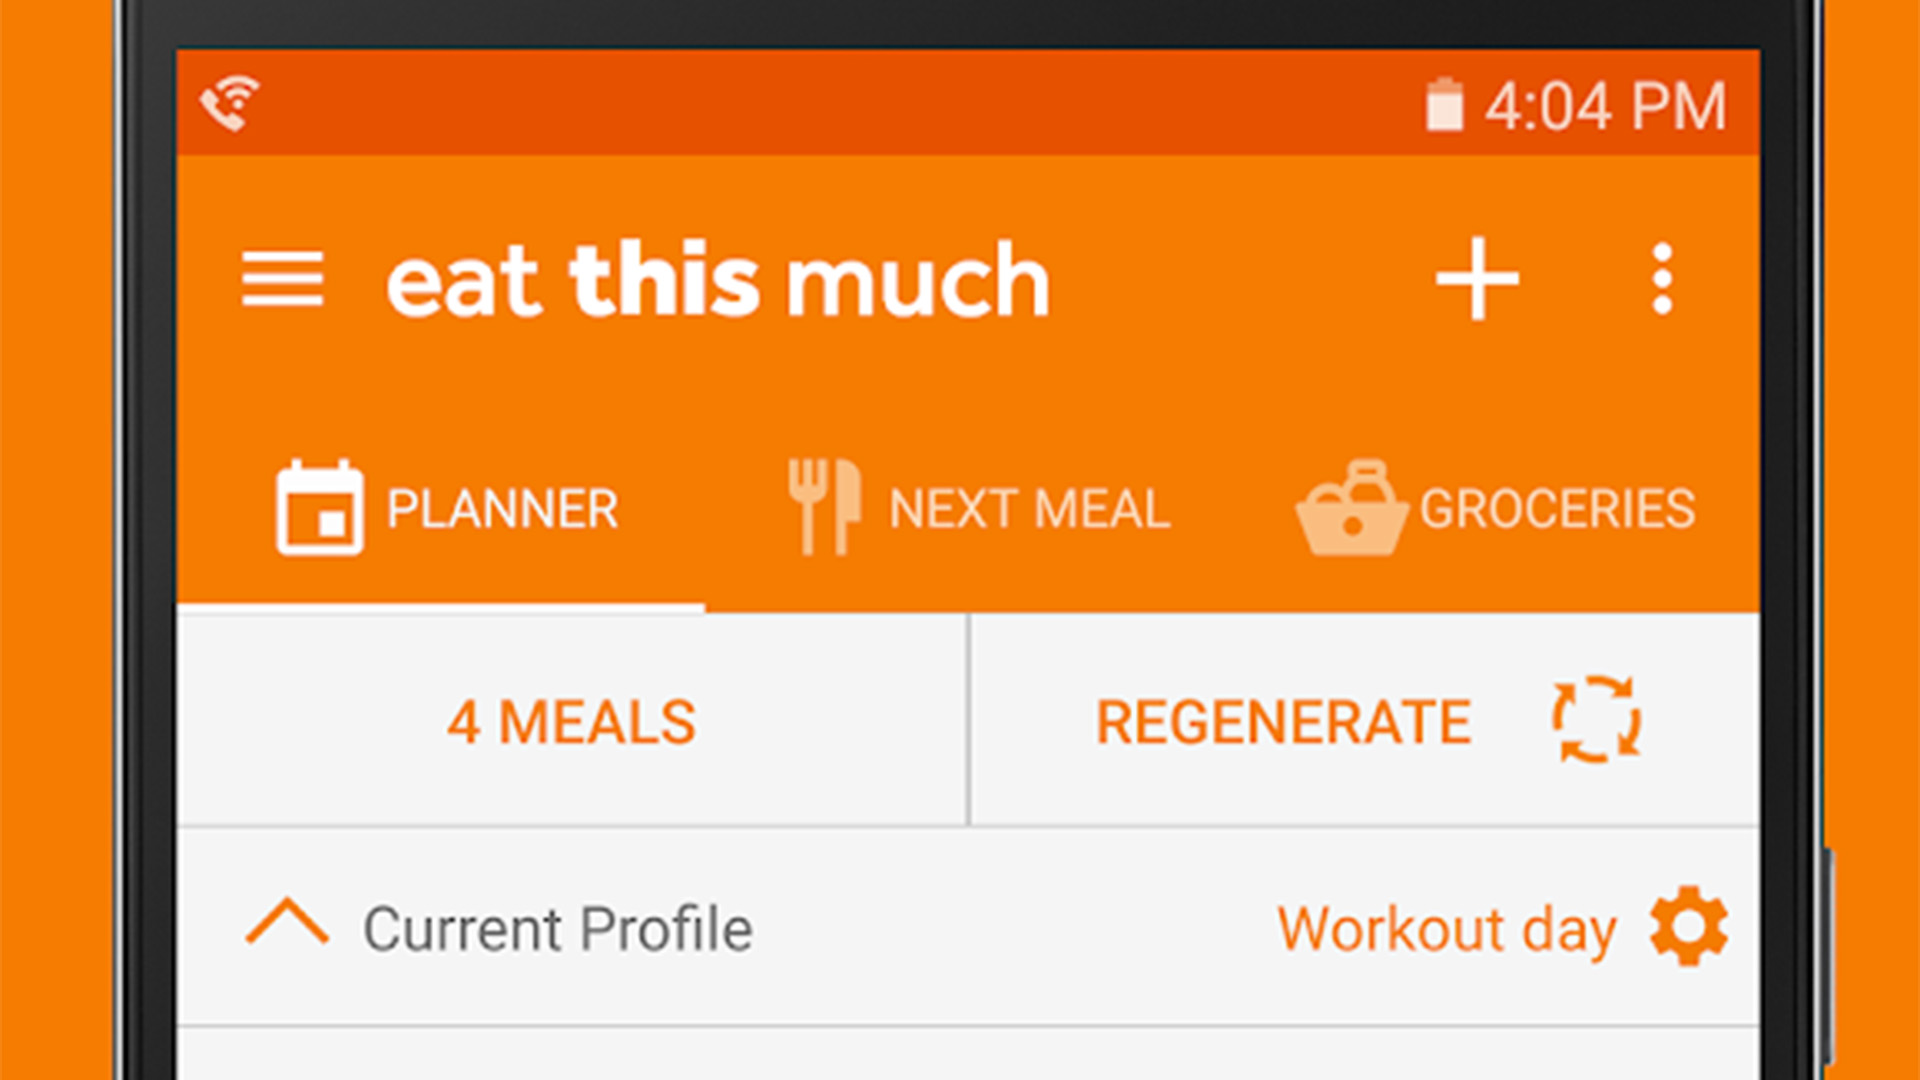 Eat This Much best meal planner apps for Android